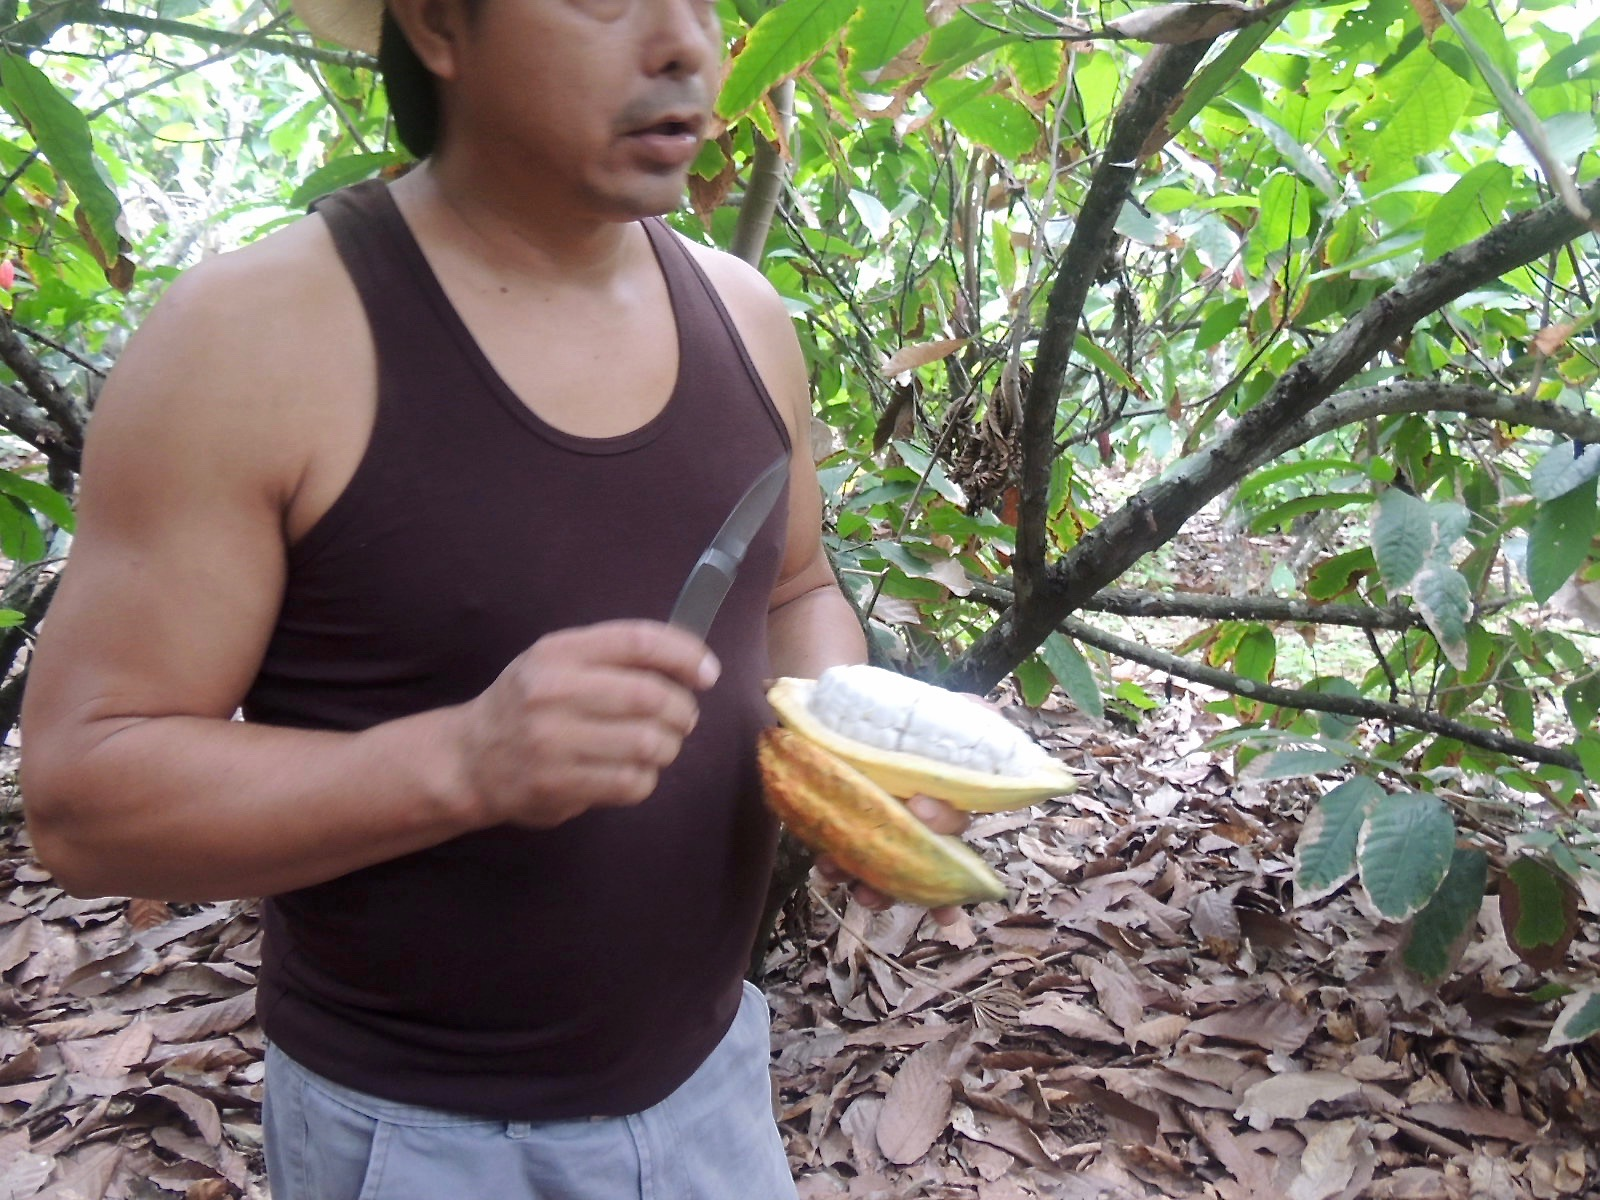 Angel splits open the pod to reveal the white membrane covered cocoa seeds.